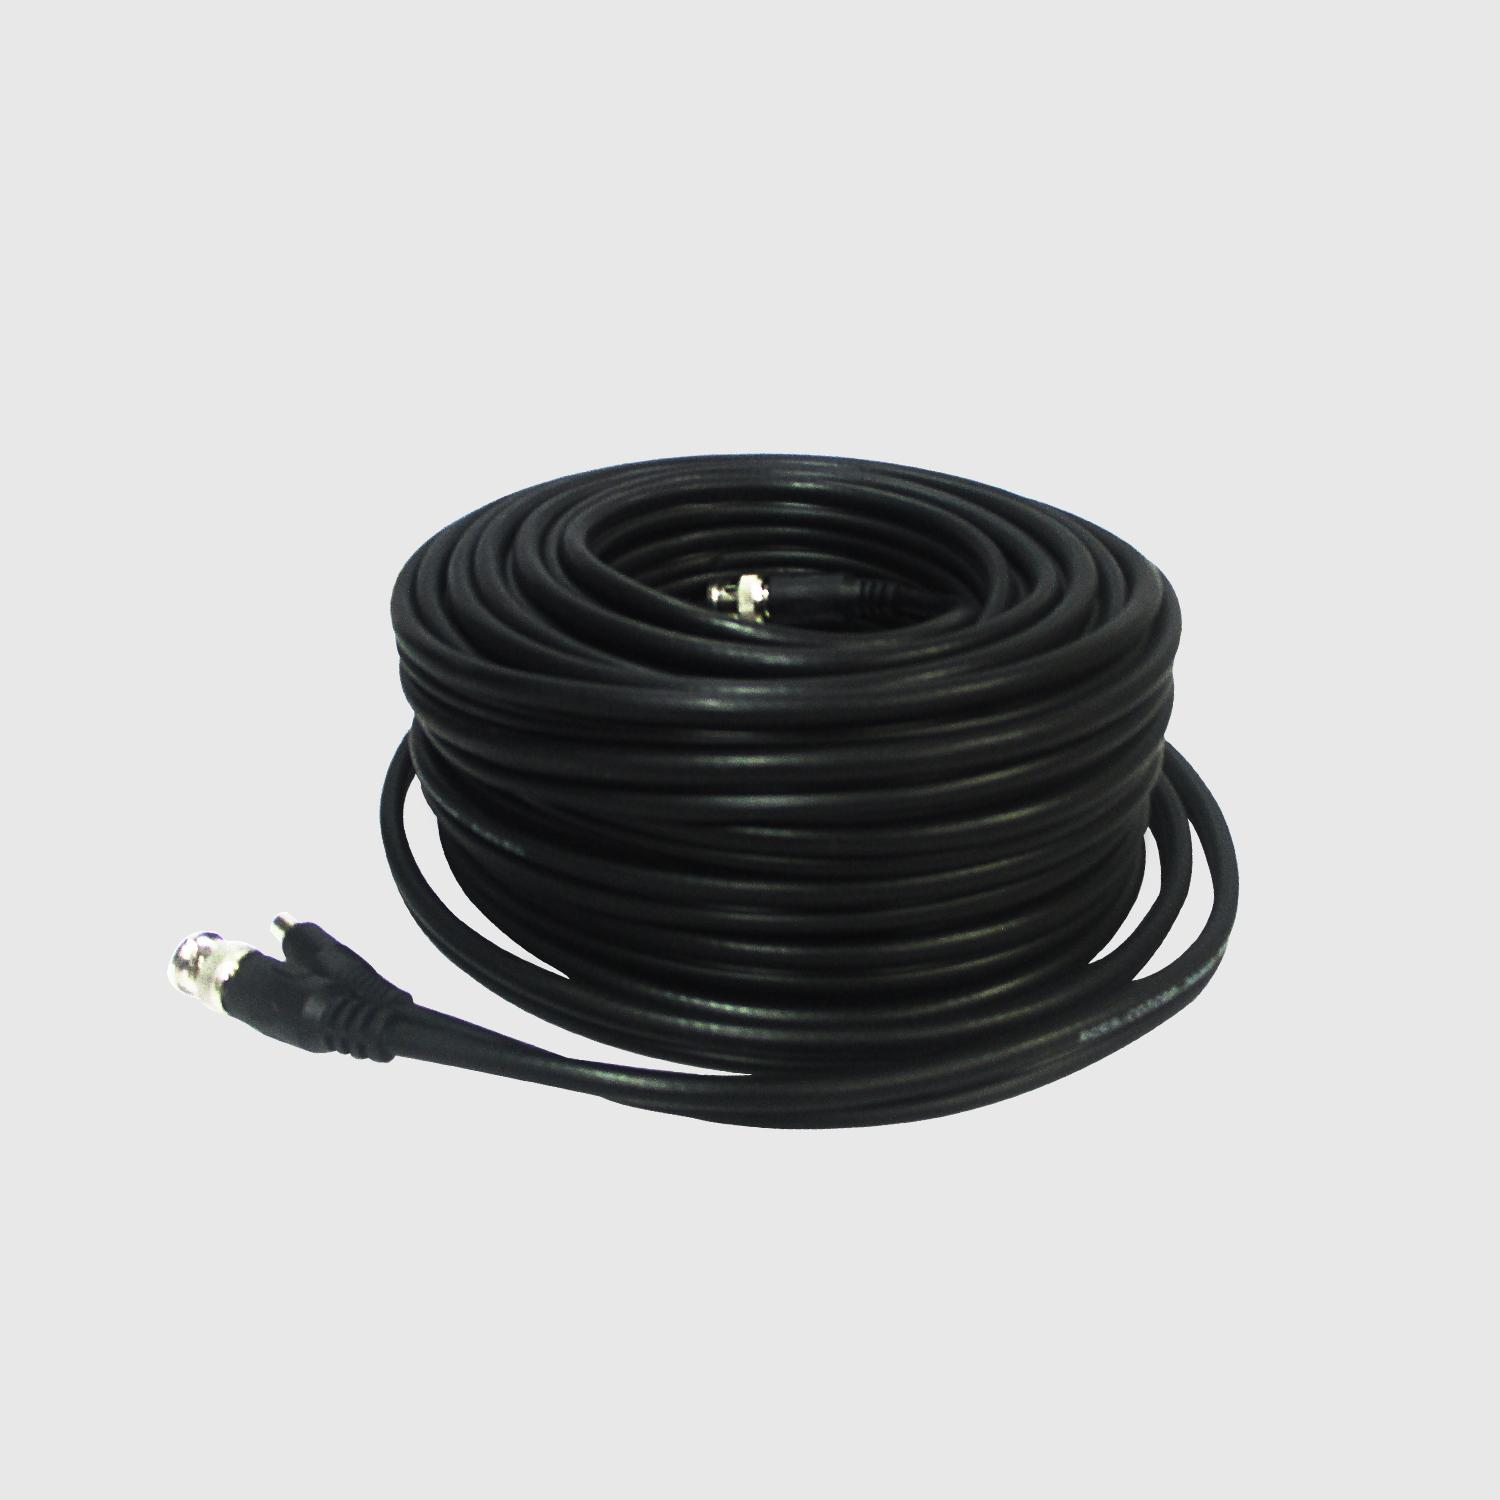 Cctv Security For Sale Systems Prices Brands Specs In Video Balun Black Endura Professional Coaxial Cable 20awg Uv Resistant Siamese 20 Meters With Power